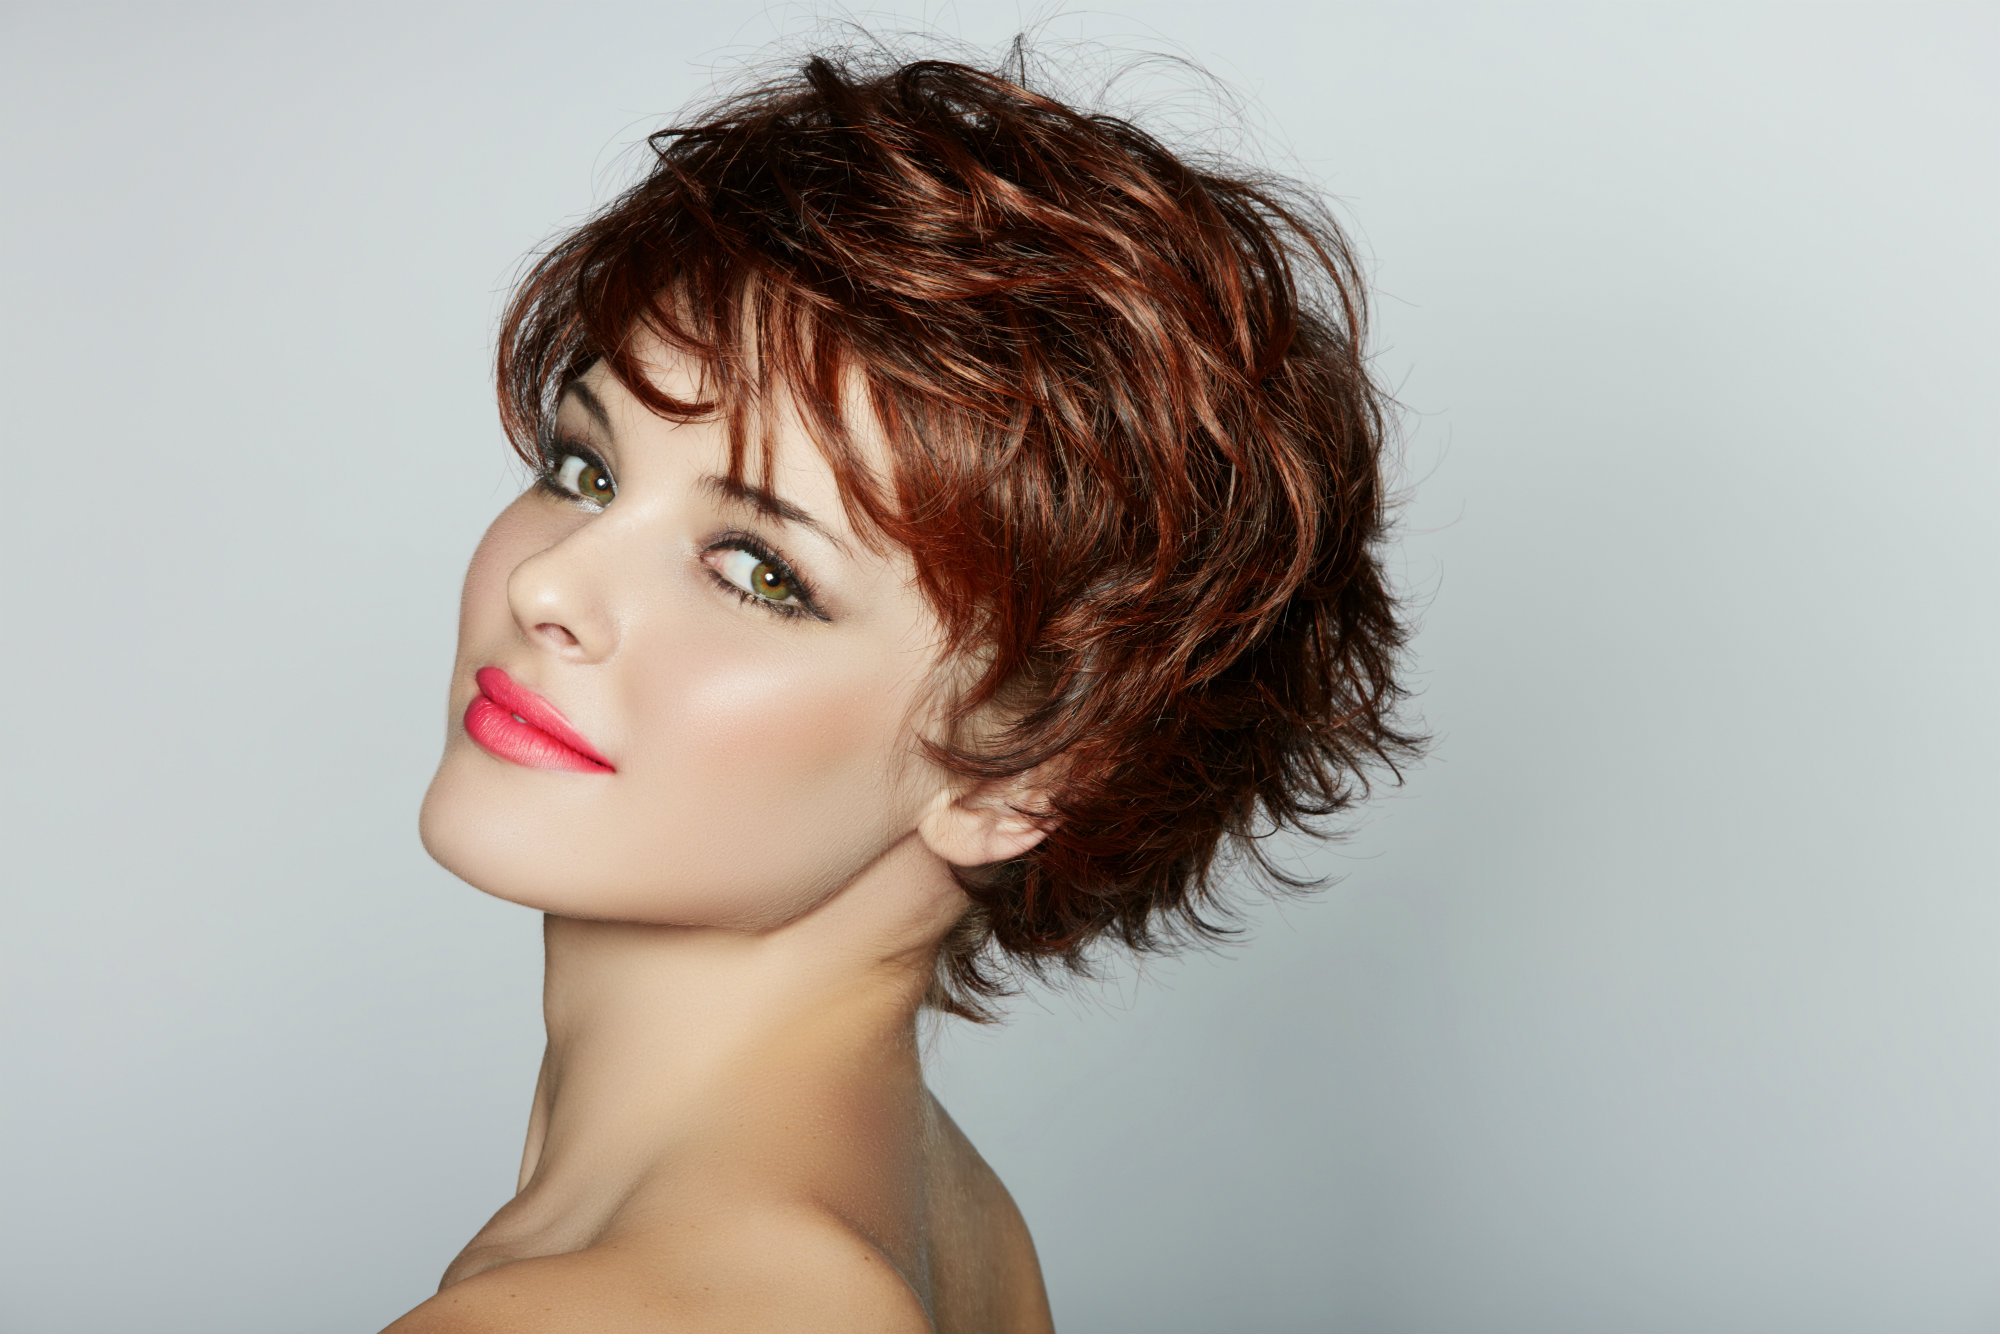 Short Hairstyles For Wavy Hair Ideas – Hair & Skin Health With Short Cuts For Wavy Hair (View 22 of 25)